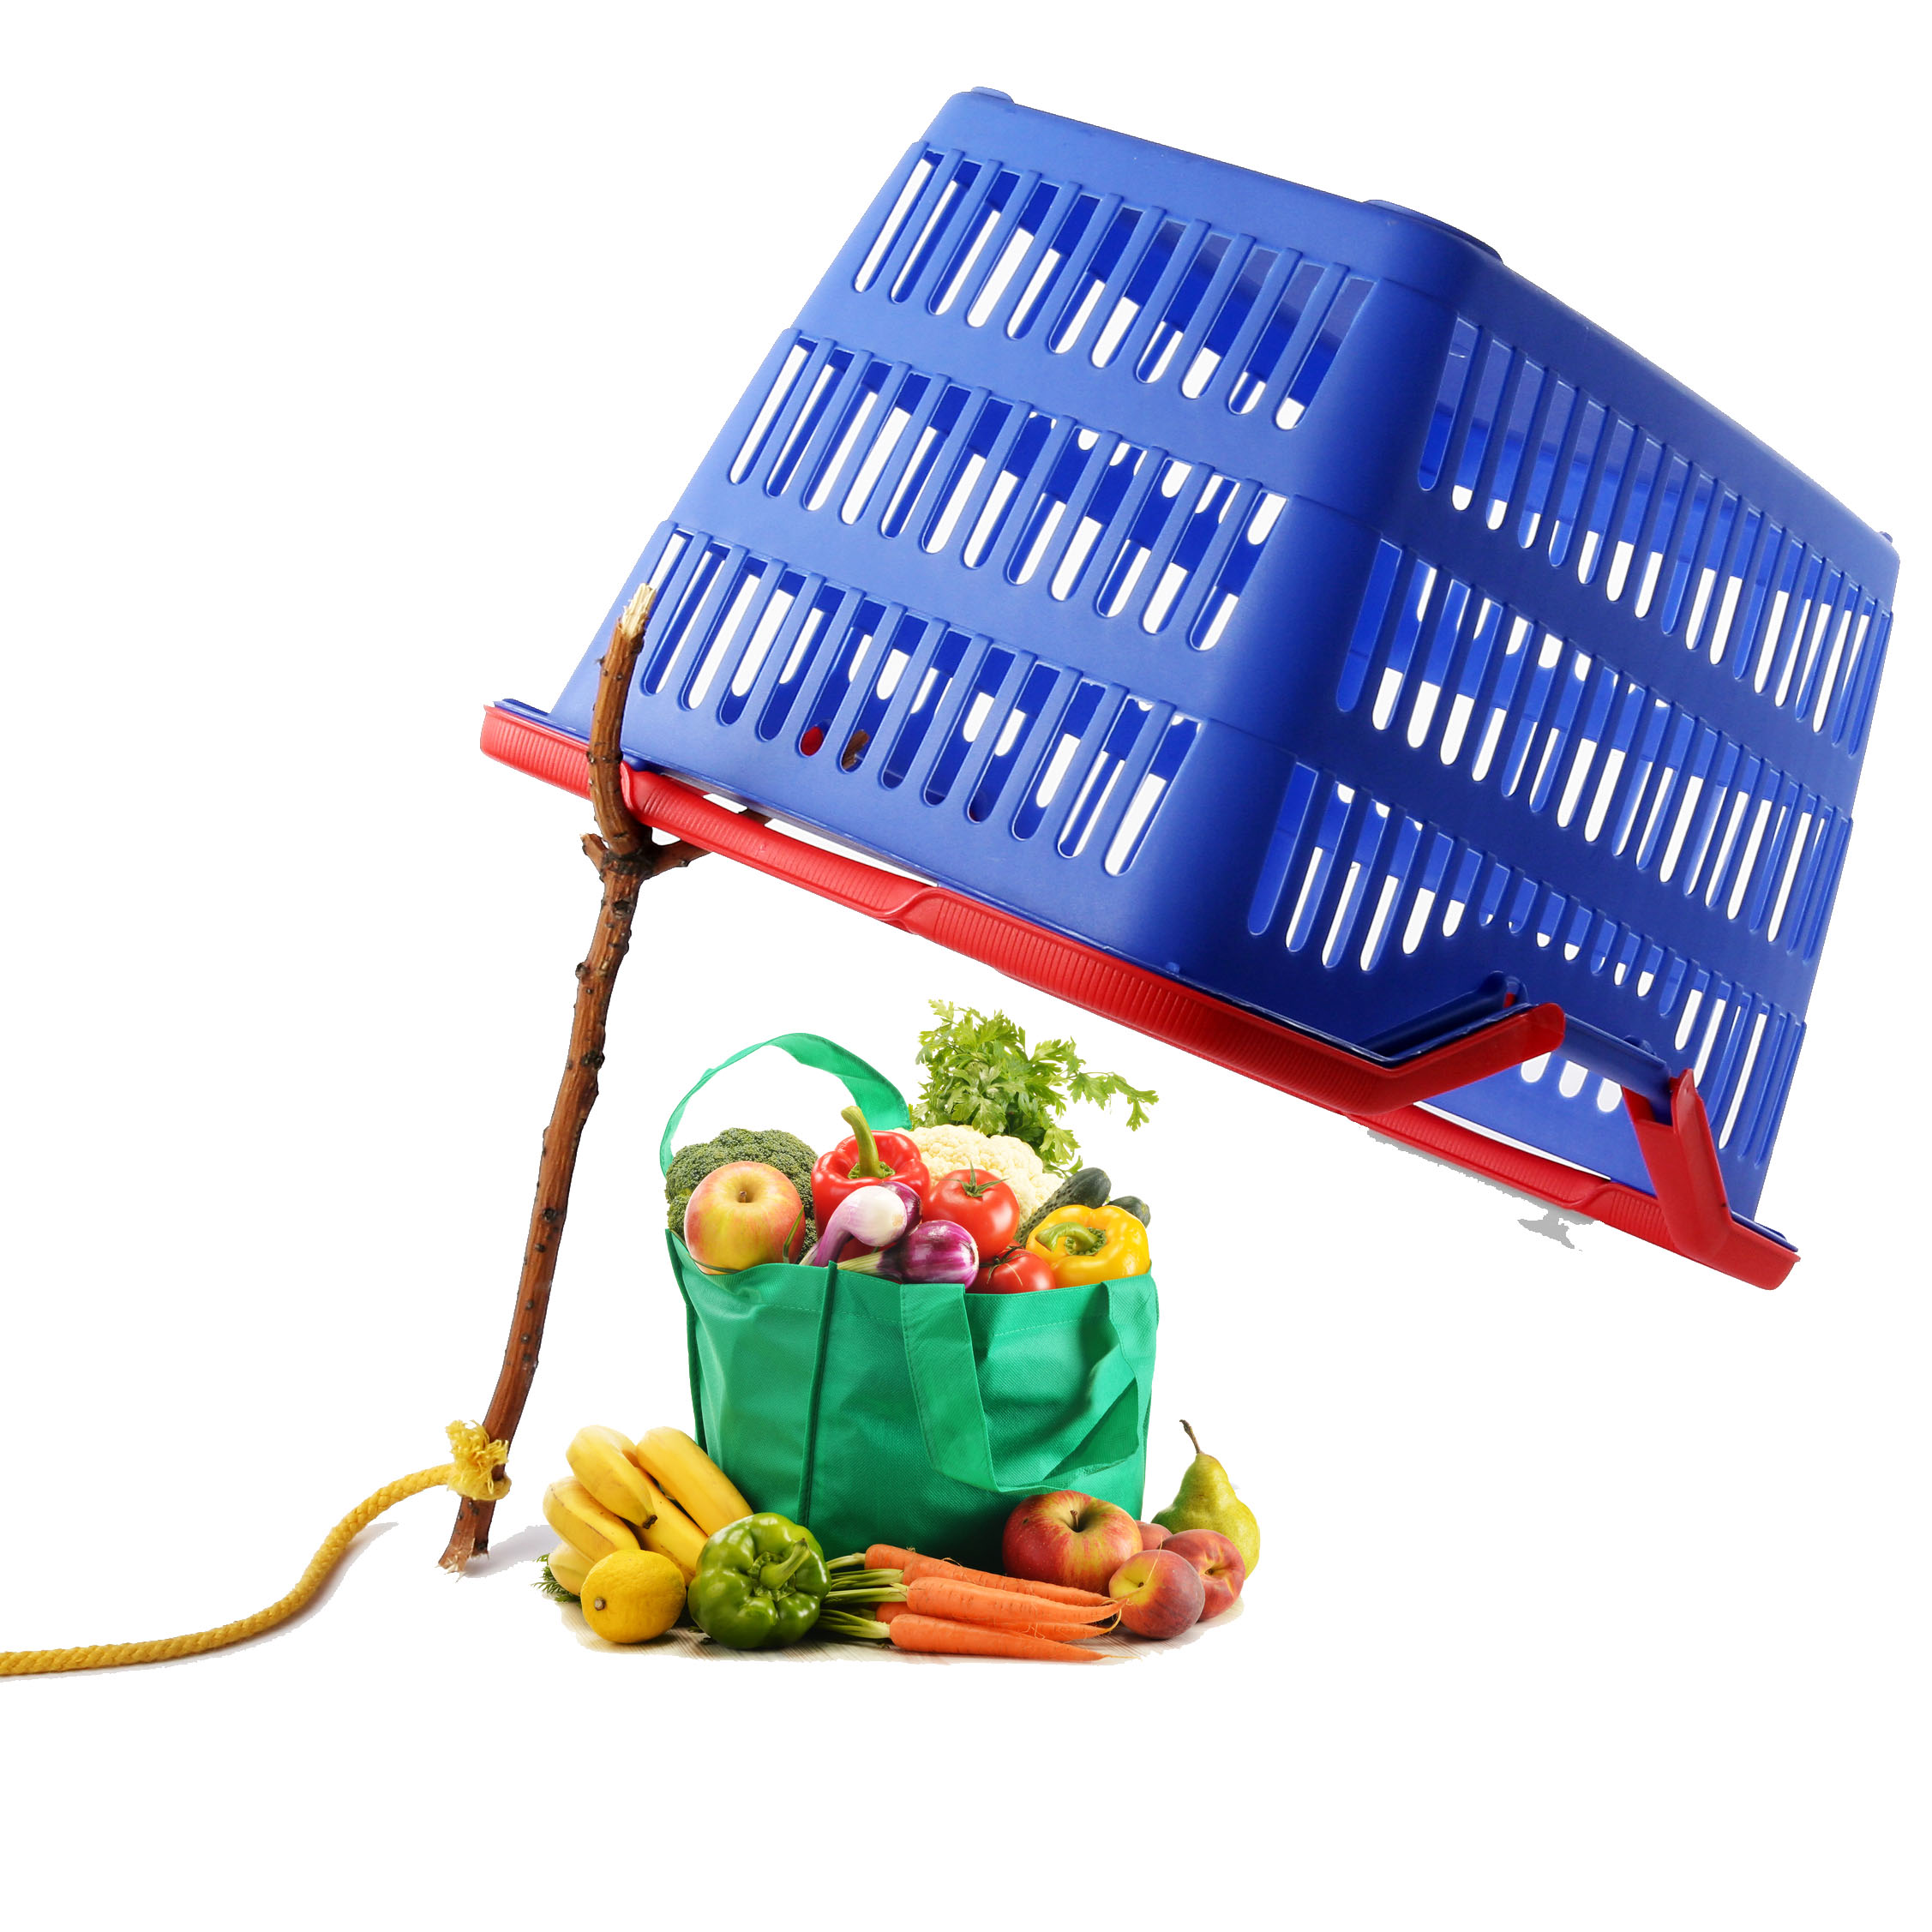 5 Tips for Avoiding Supermarket Traps